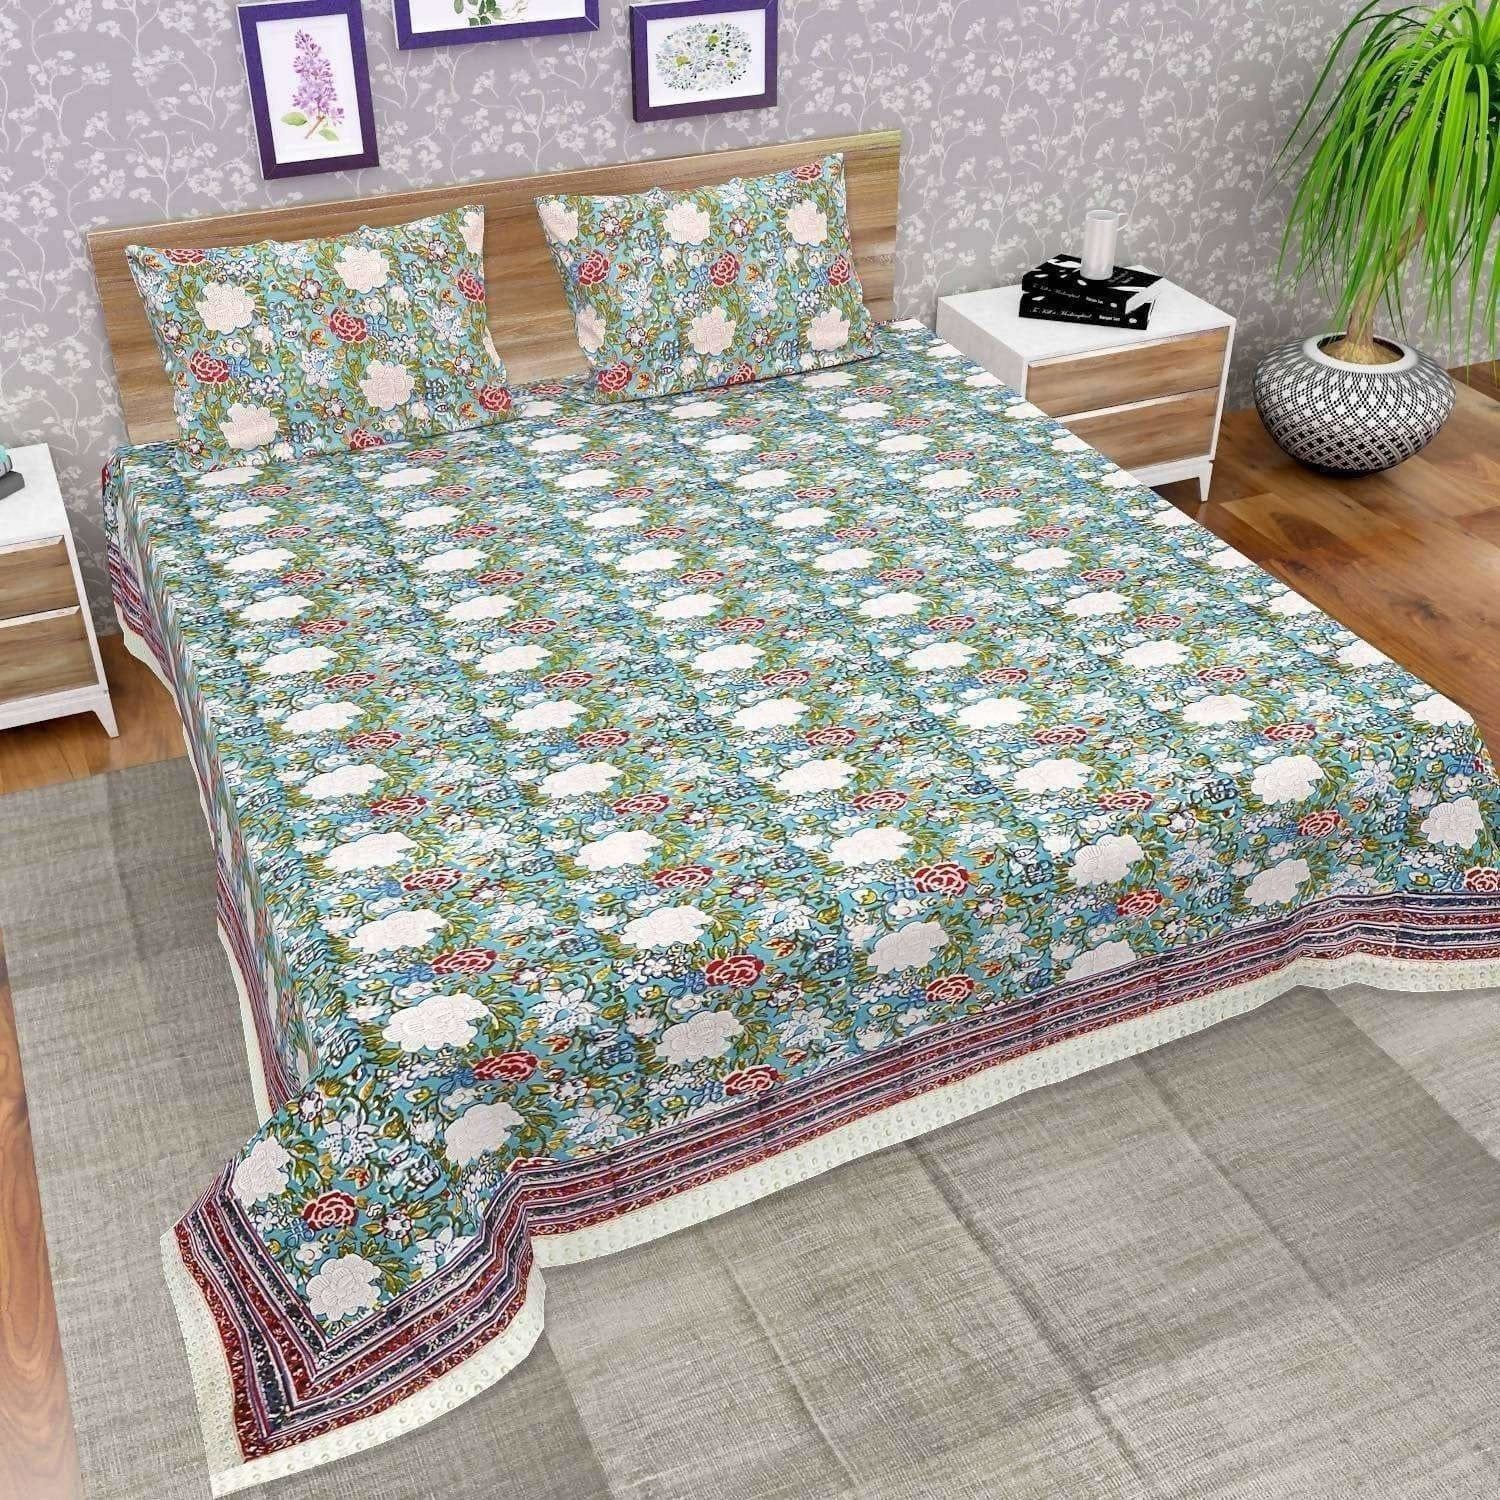 Premium Jaipuri Hand Block Printed Traditional Cotton Queen Bedsheet with 2 Pillow Covers